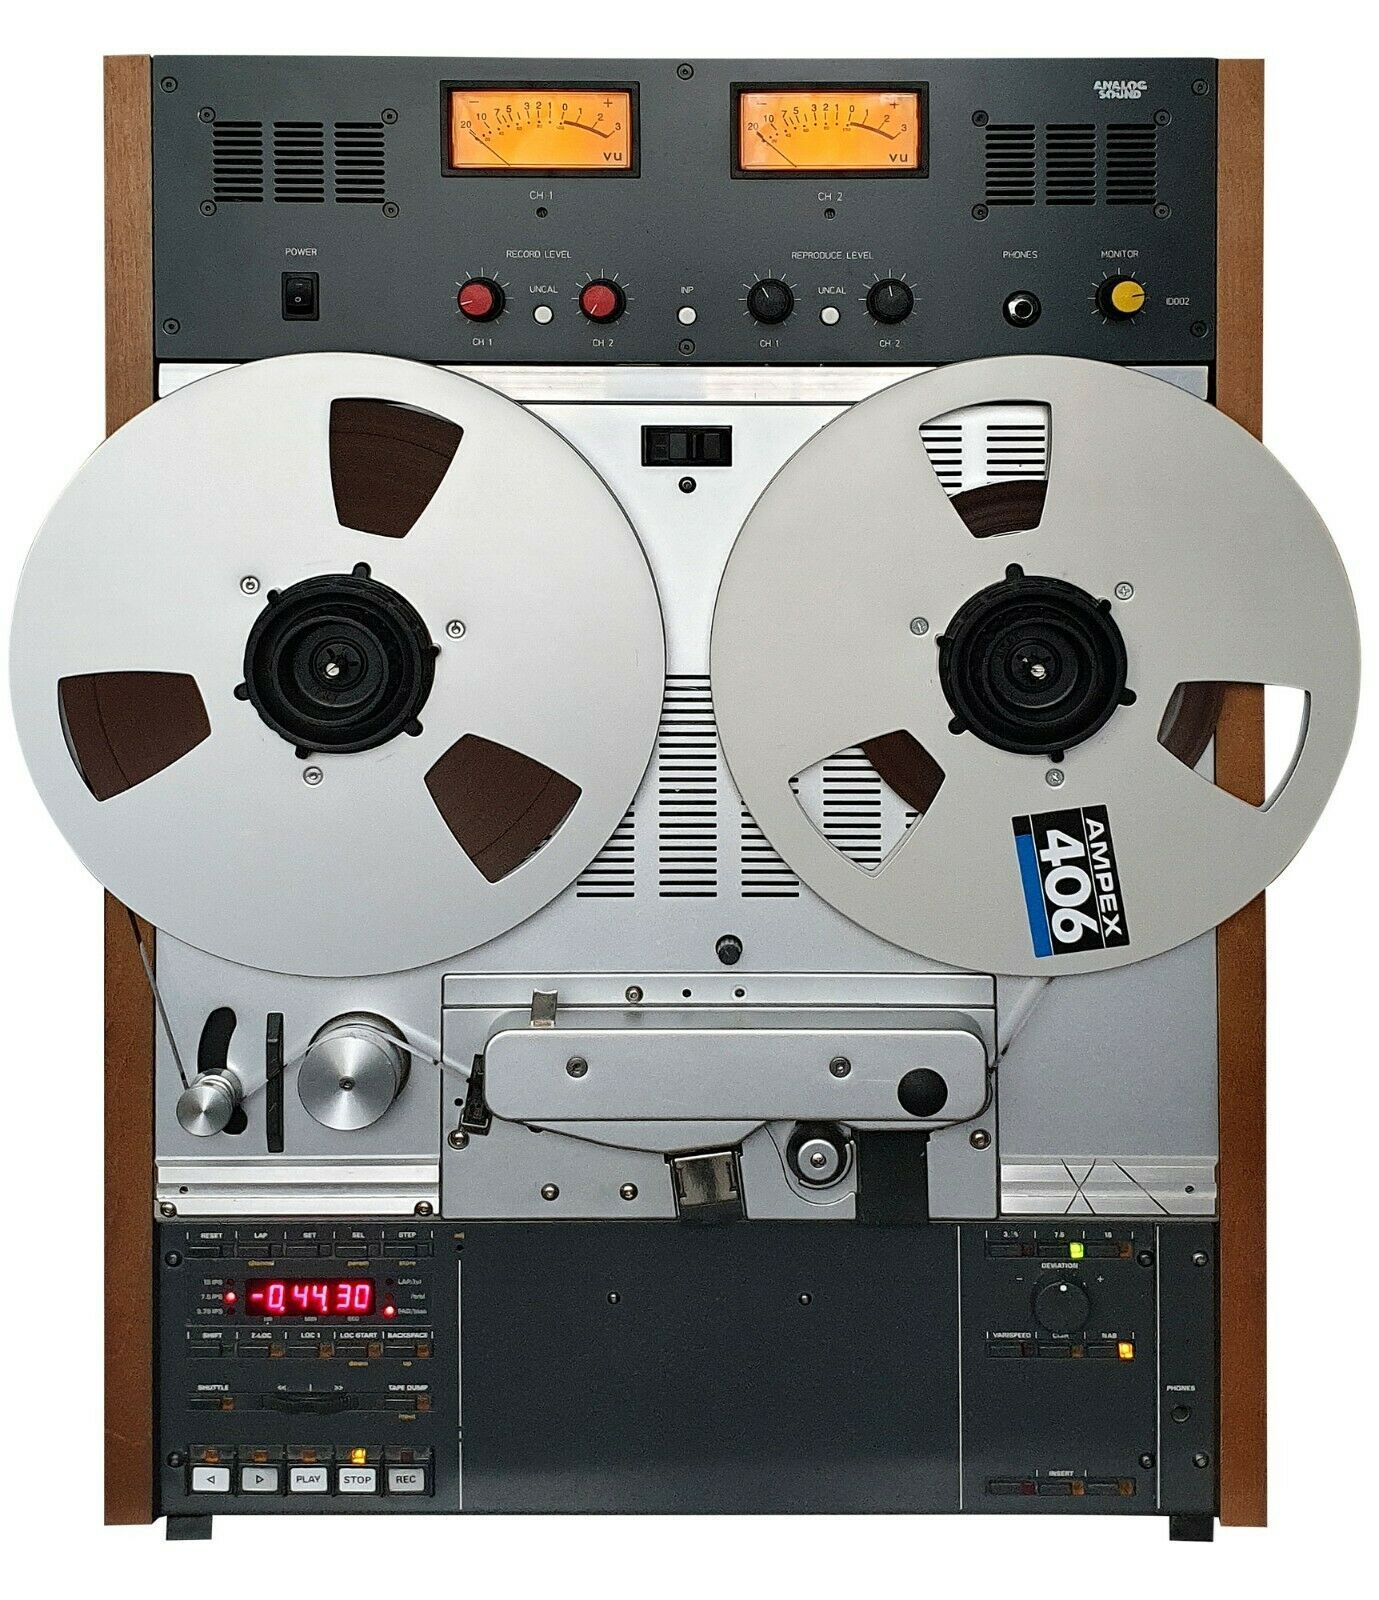 New VU Meter Bridge + side panels for Studer A807, A810, A67, B67, C37 tape rec.